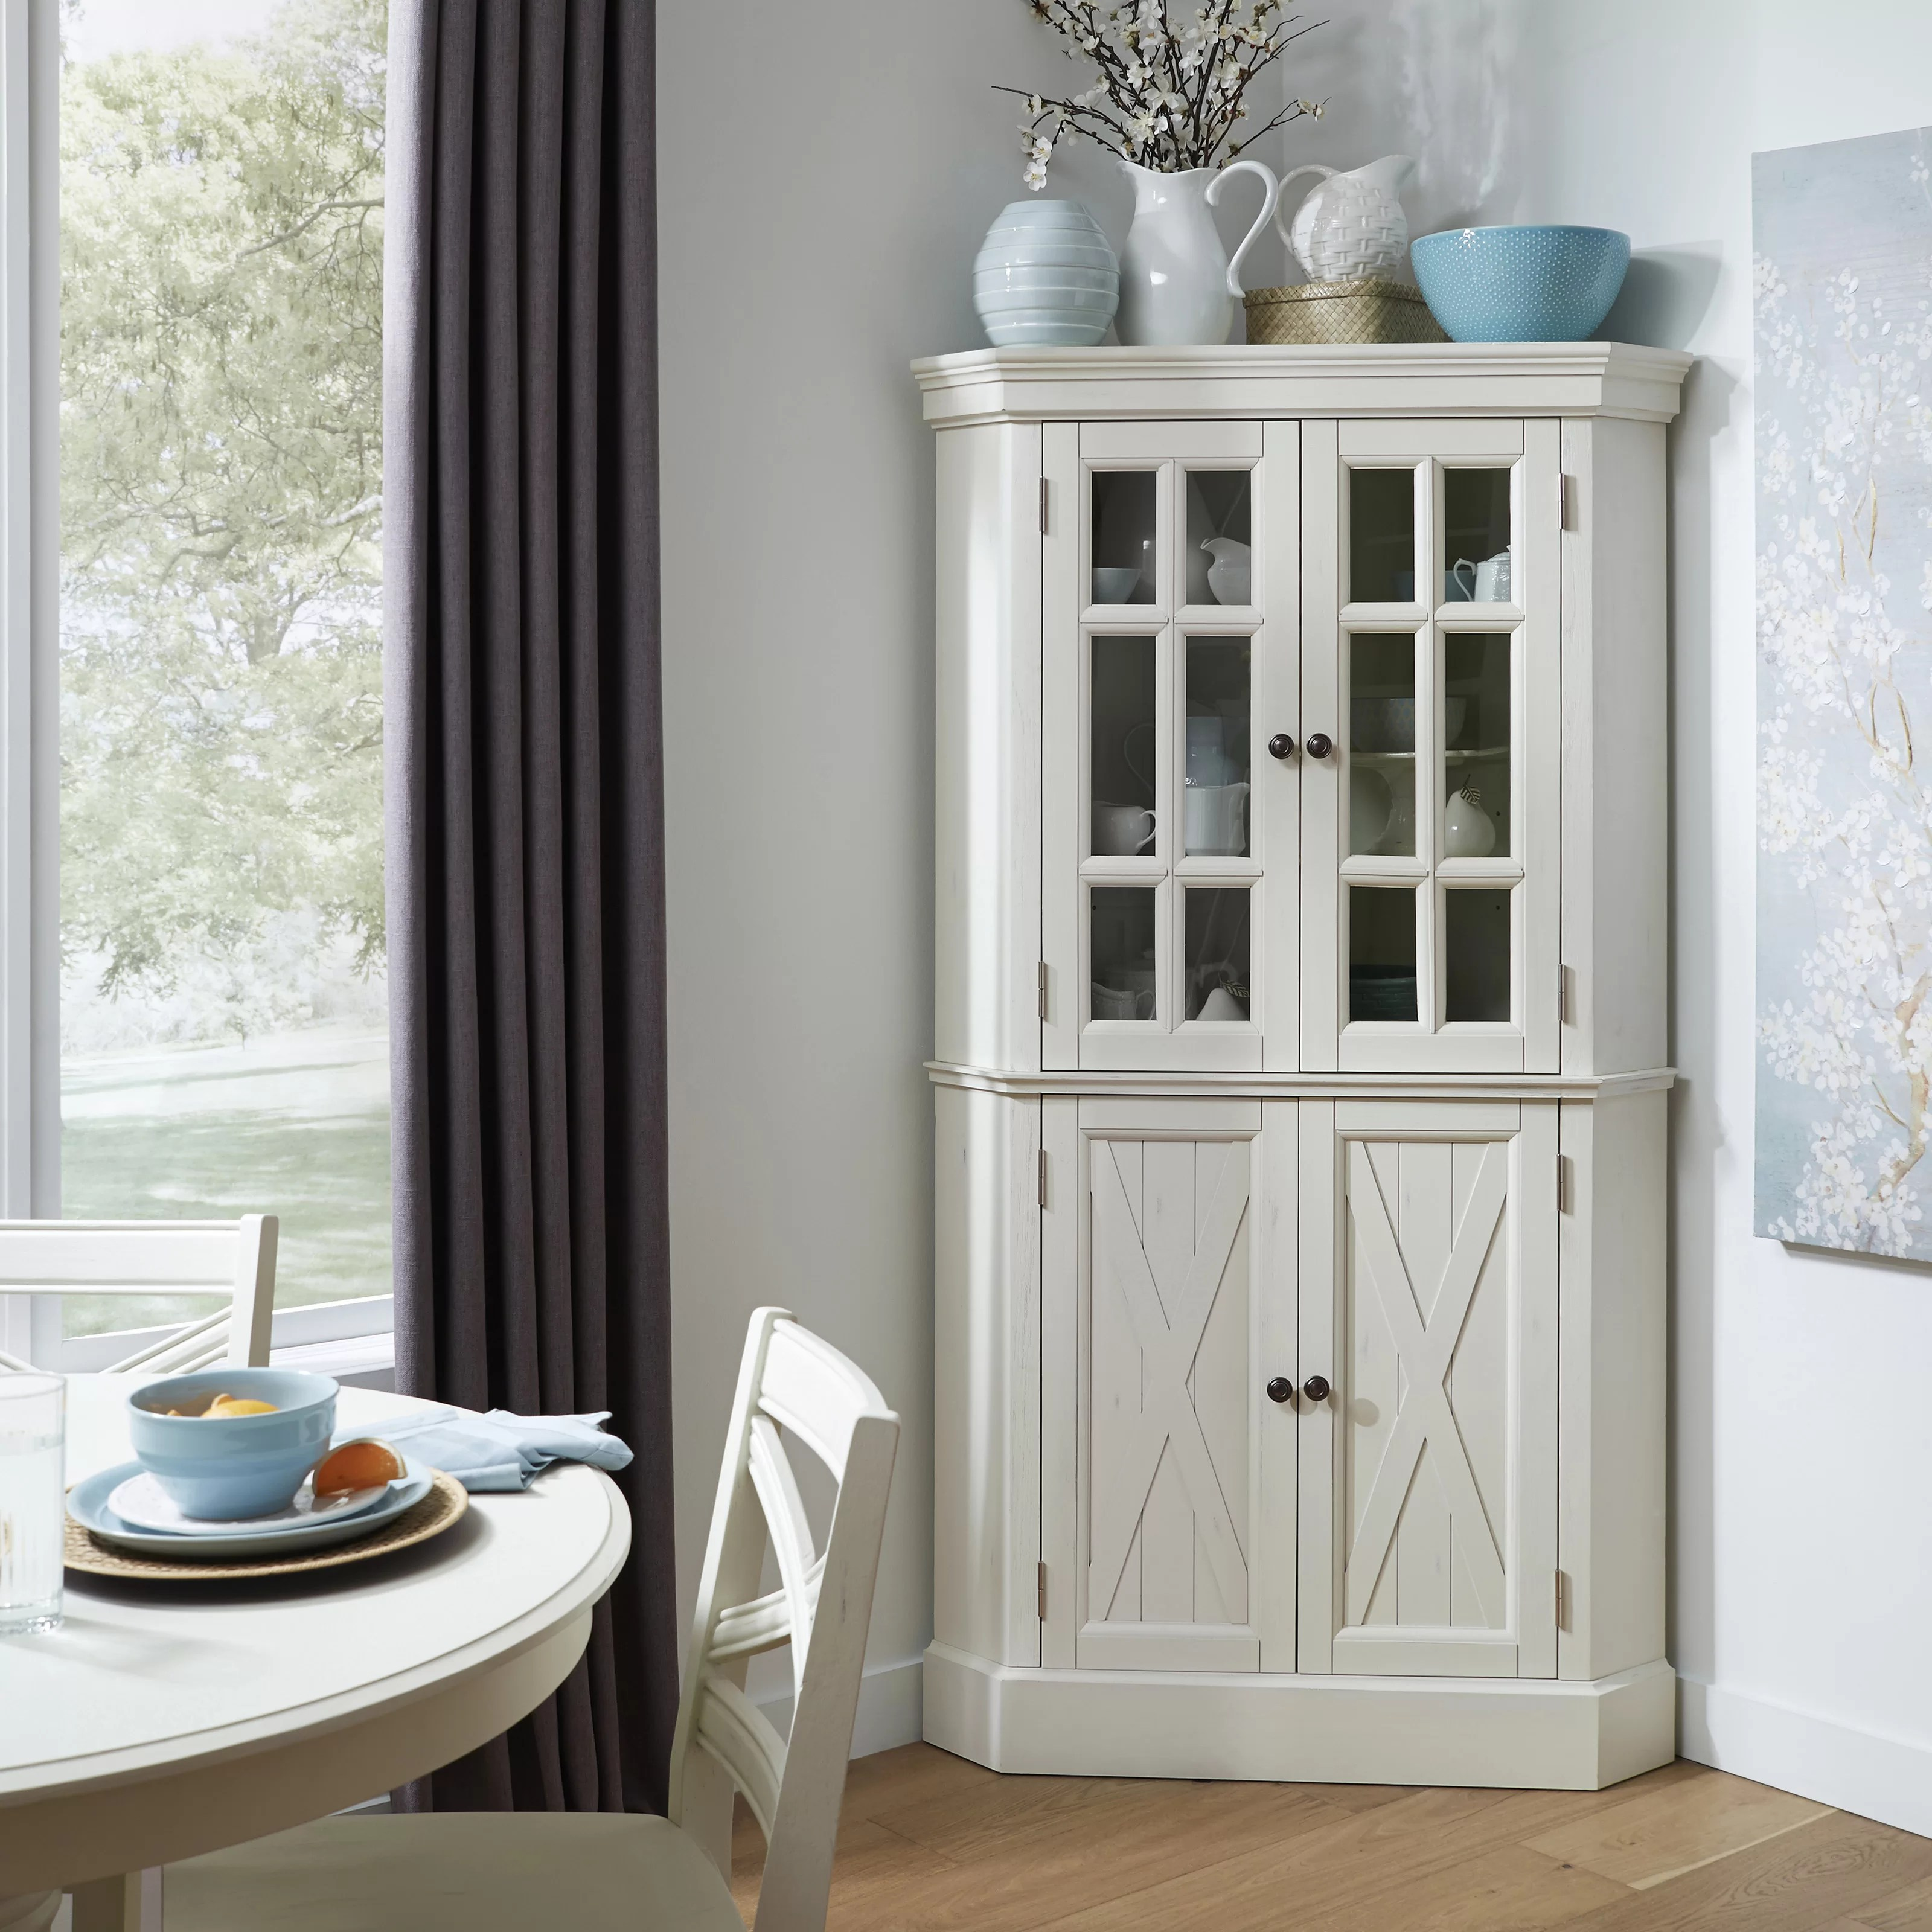 lizotte kitchen pantry display stand